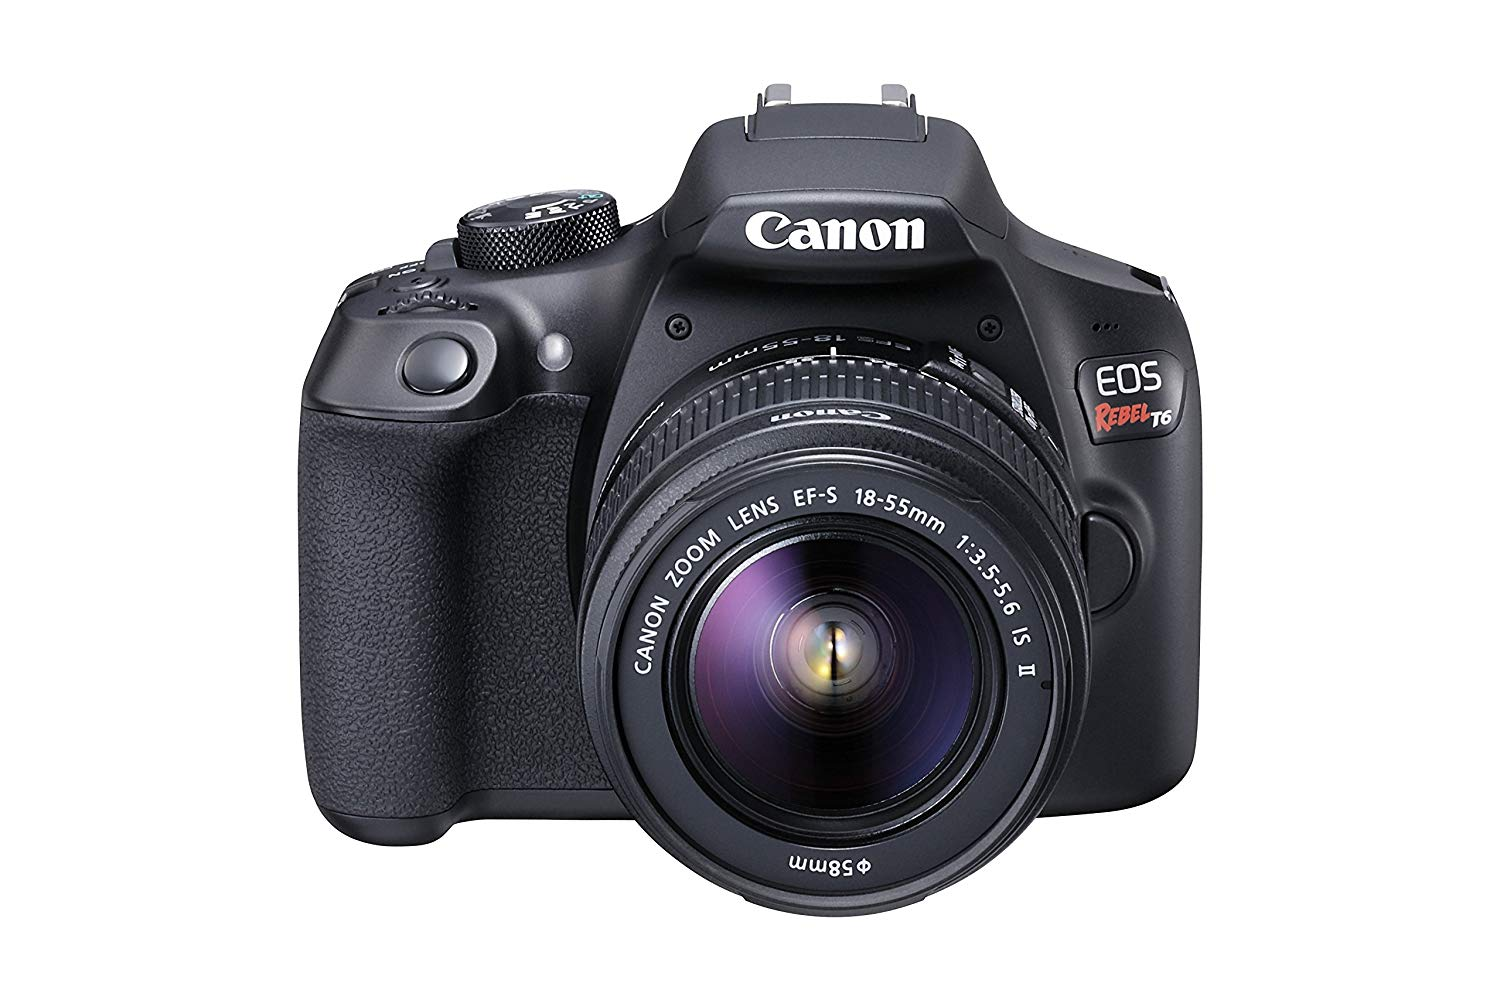 Canon T6 Digital SLR Camera Kit with EF-S 18-55mm